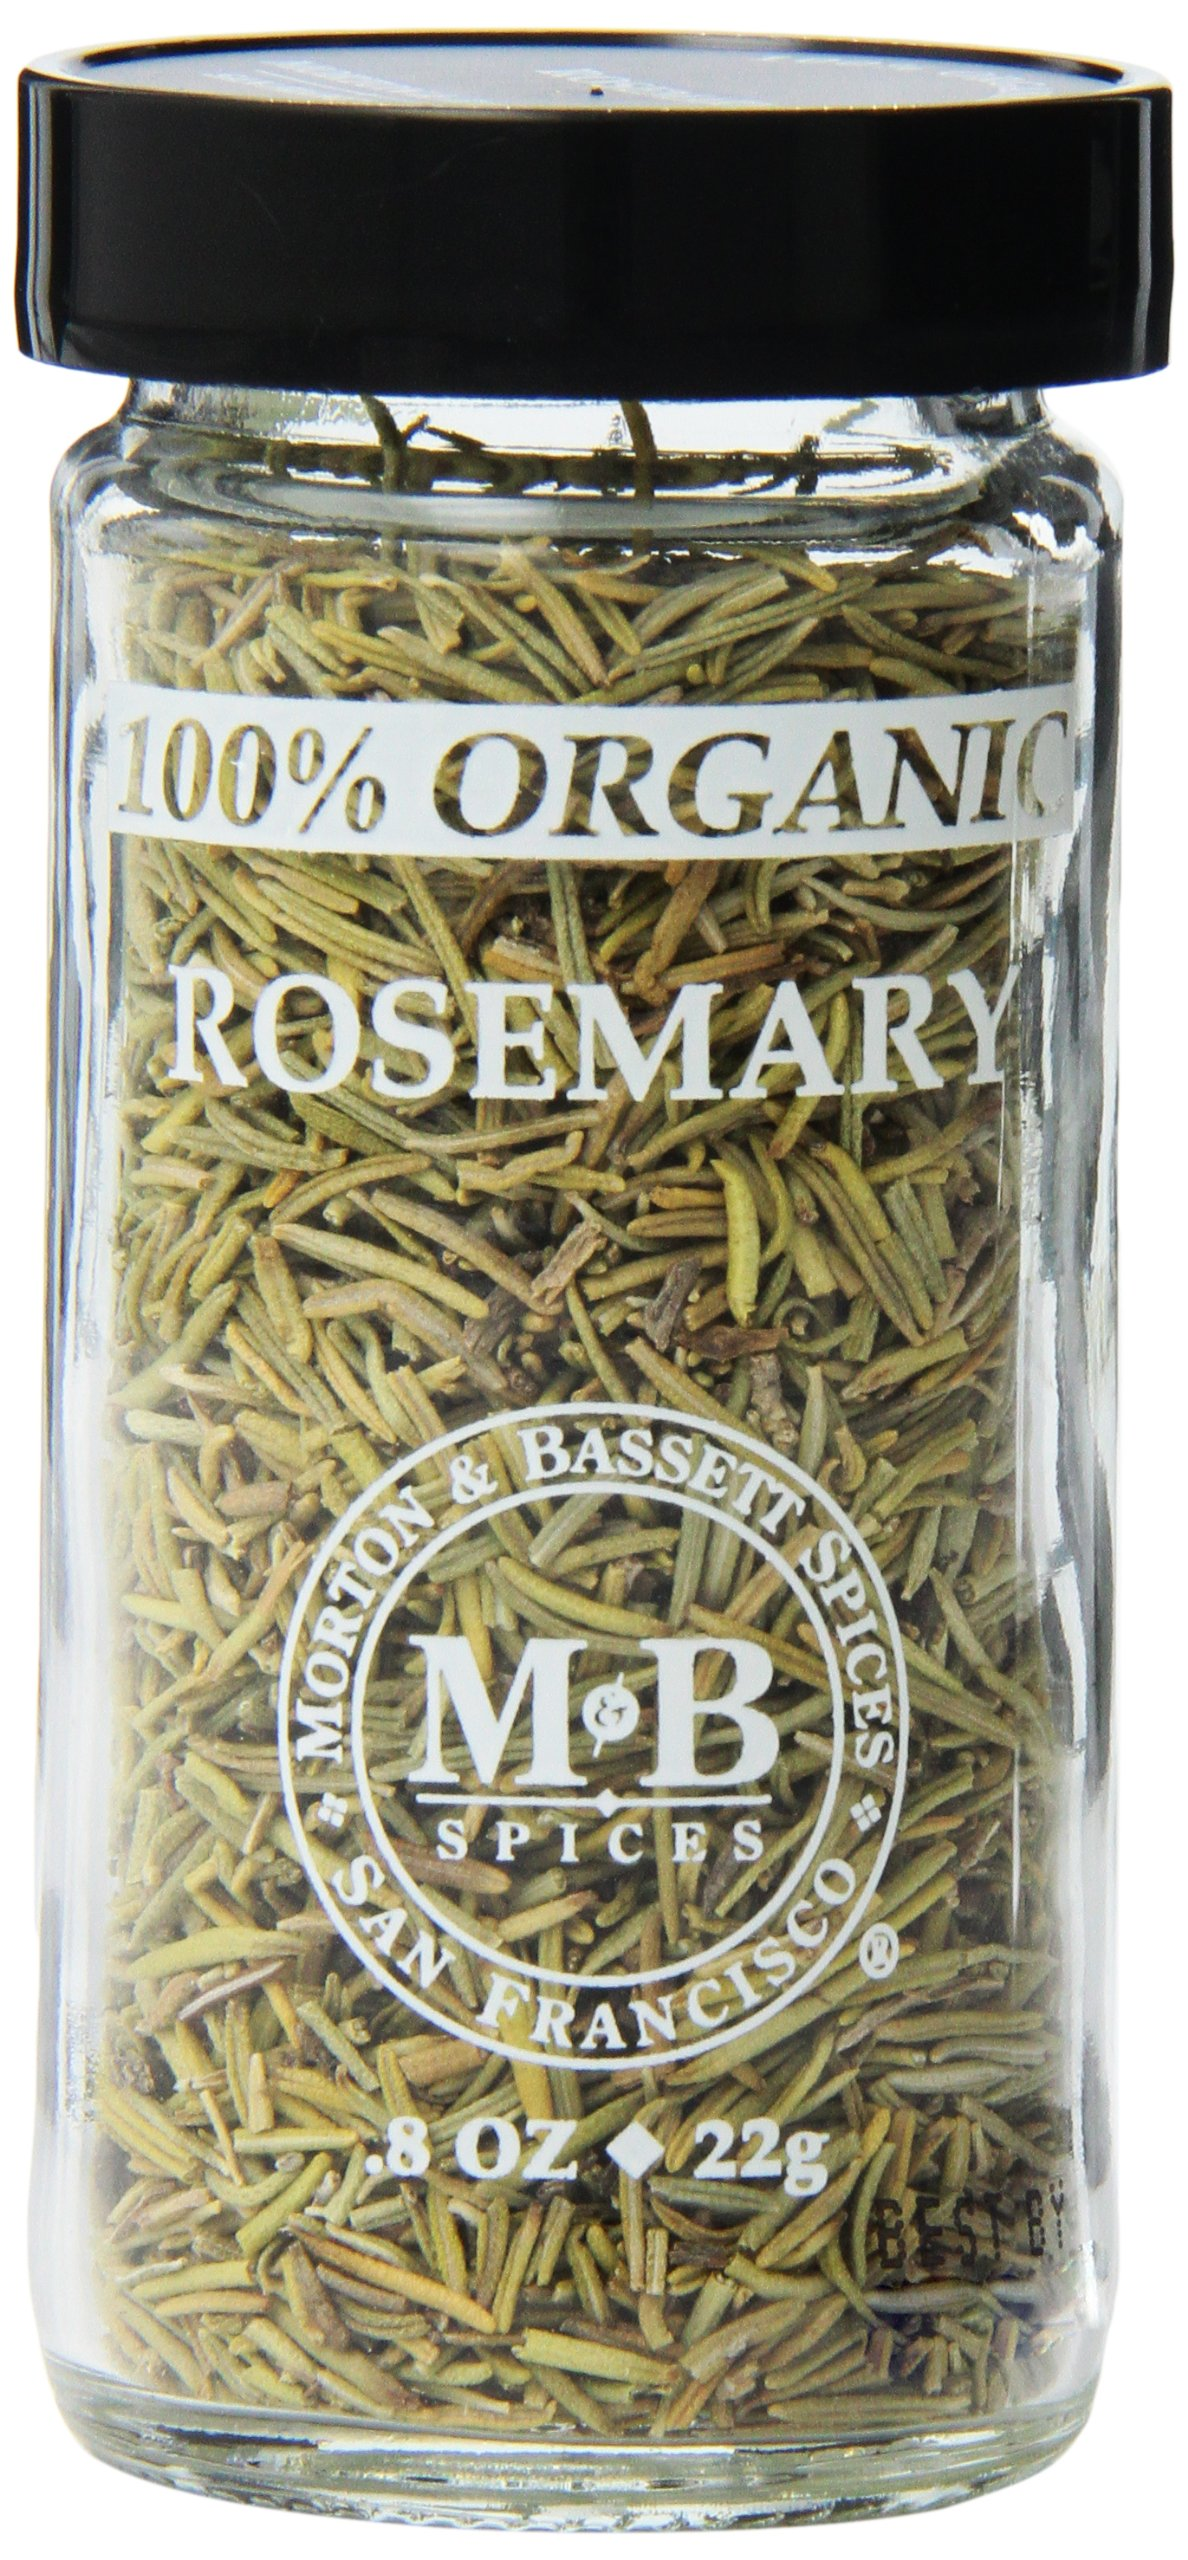 Morton & Basset Spices, Organic Rosemary, 0.8 Ounce (Pack of 3)